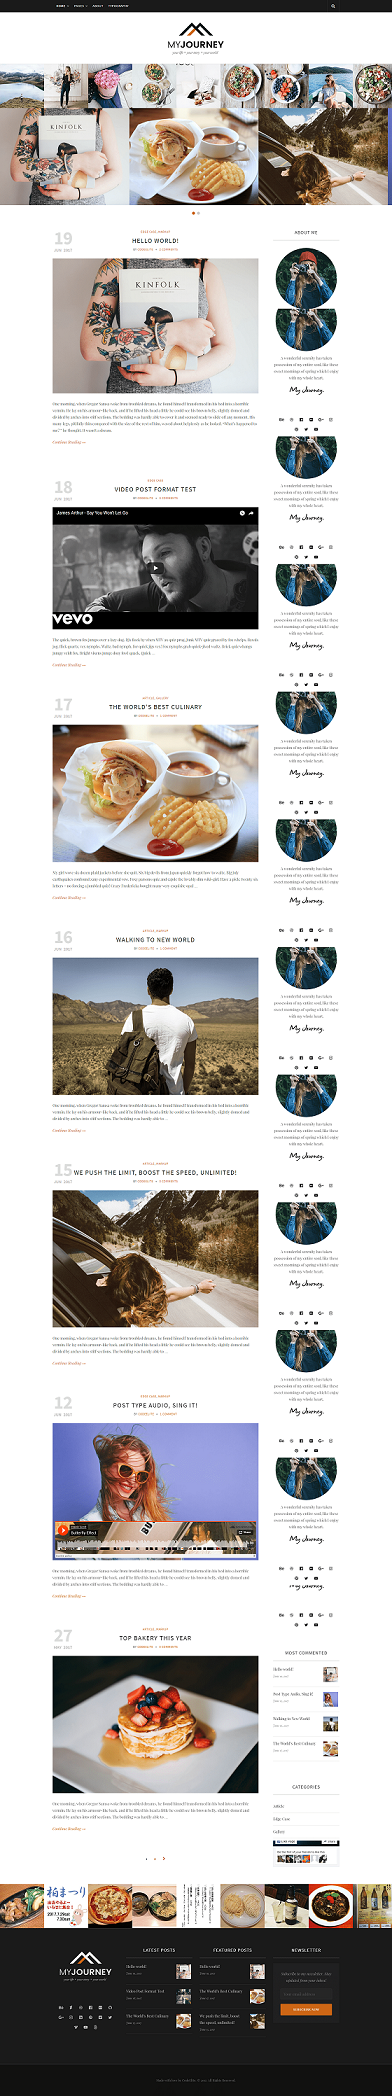 My Journey – Personal latest WordPress Blog Themes